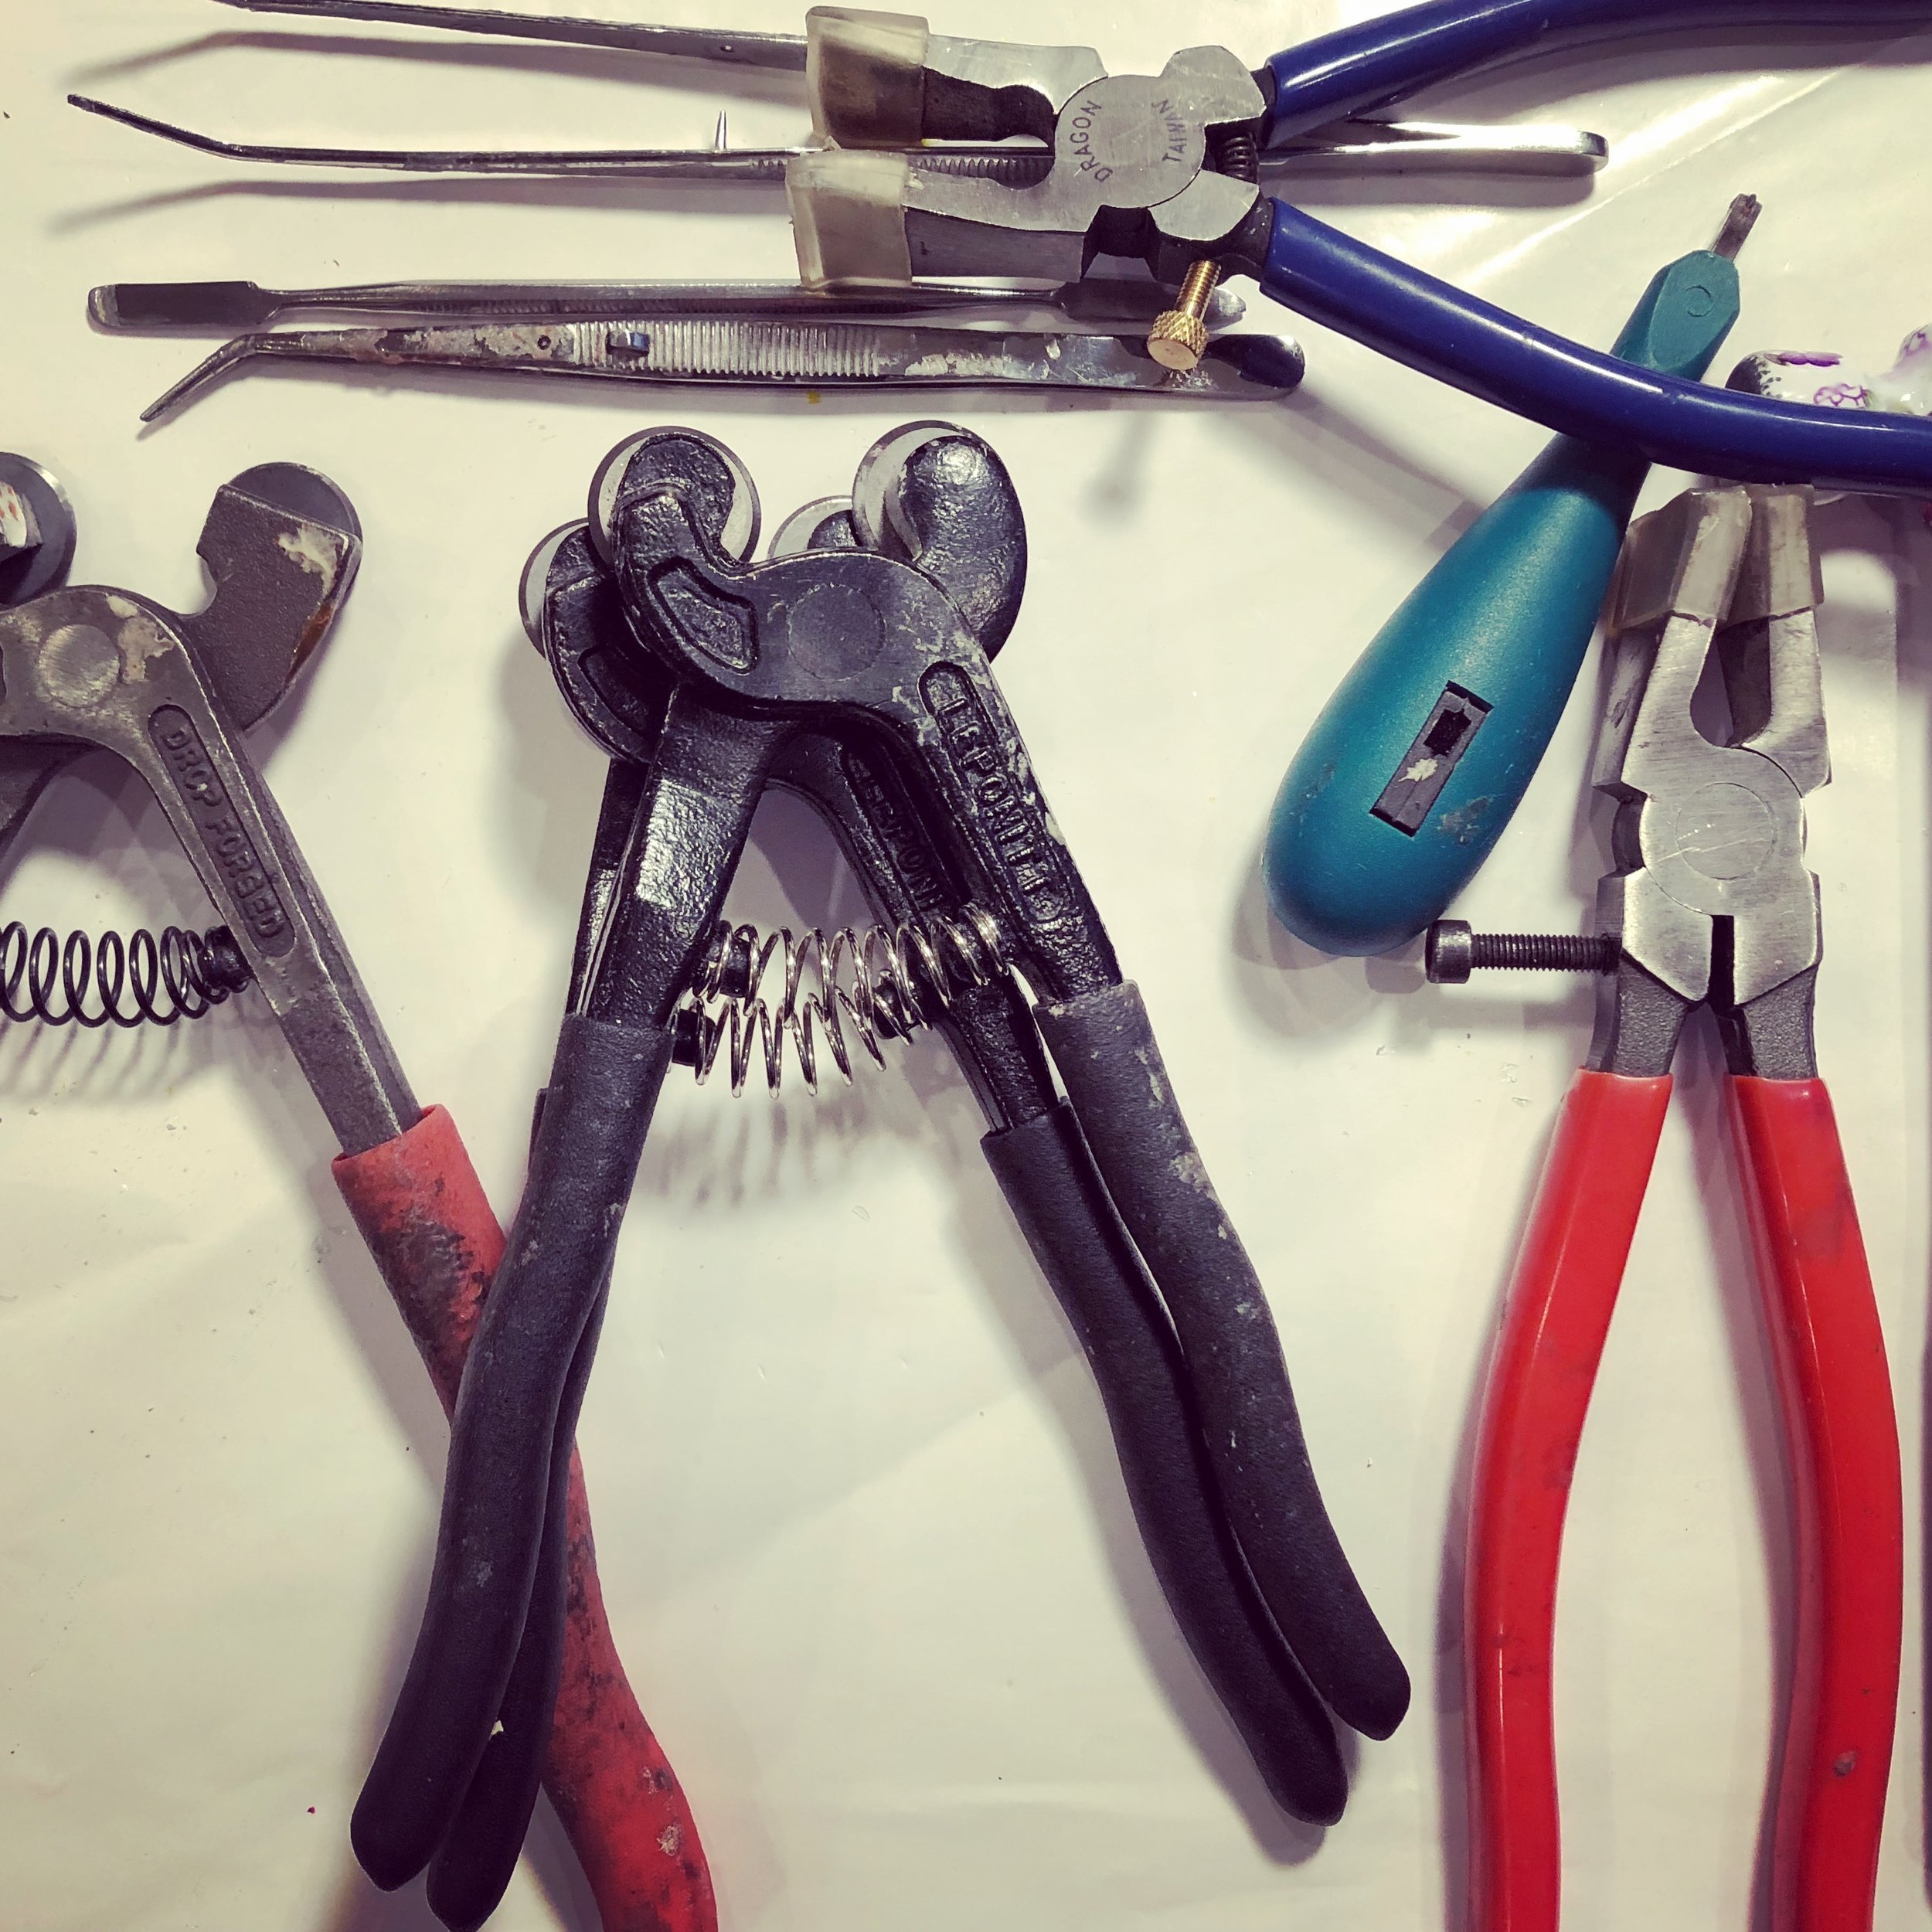 various tools to get the job done